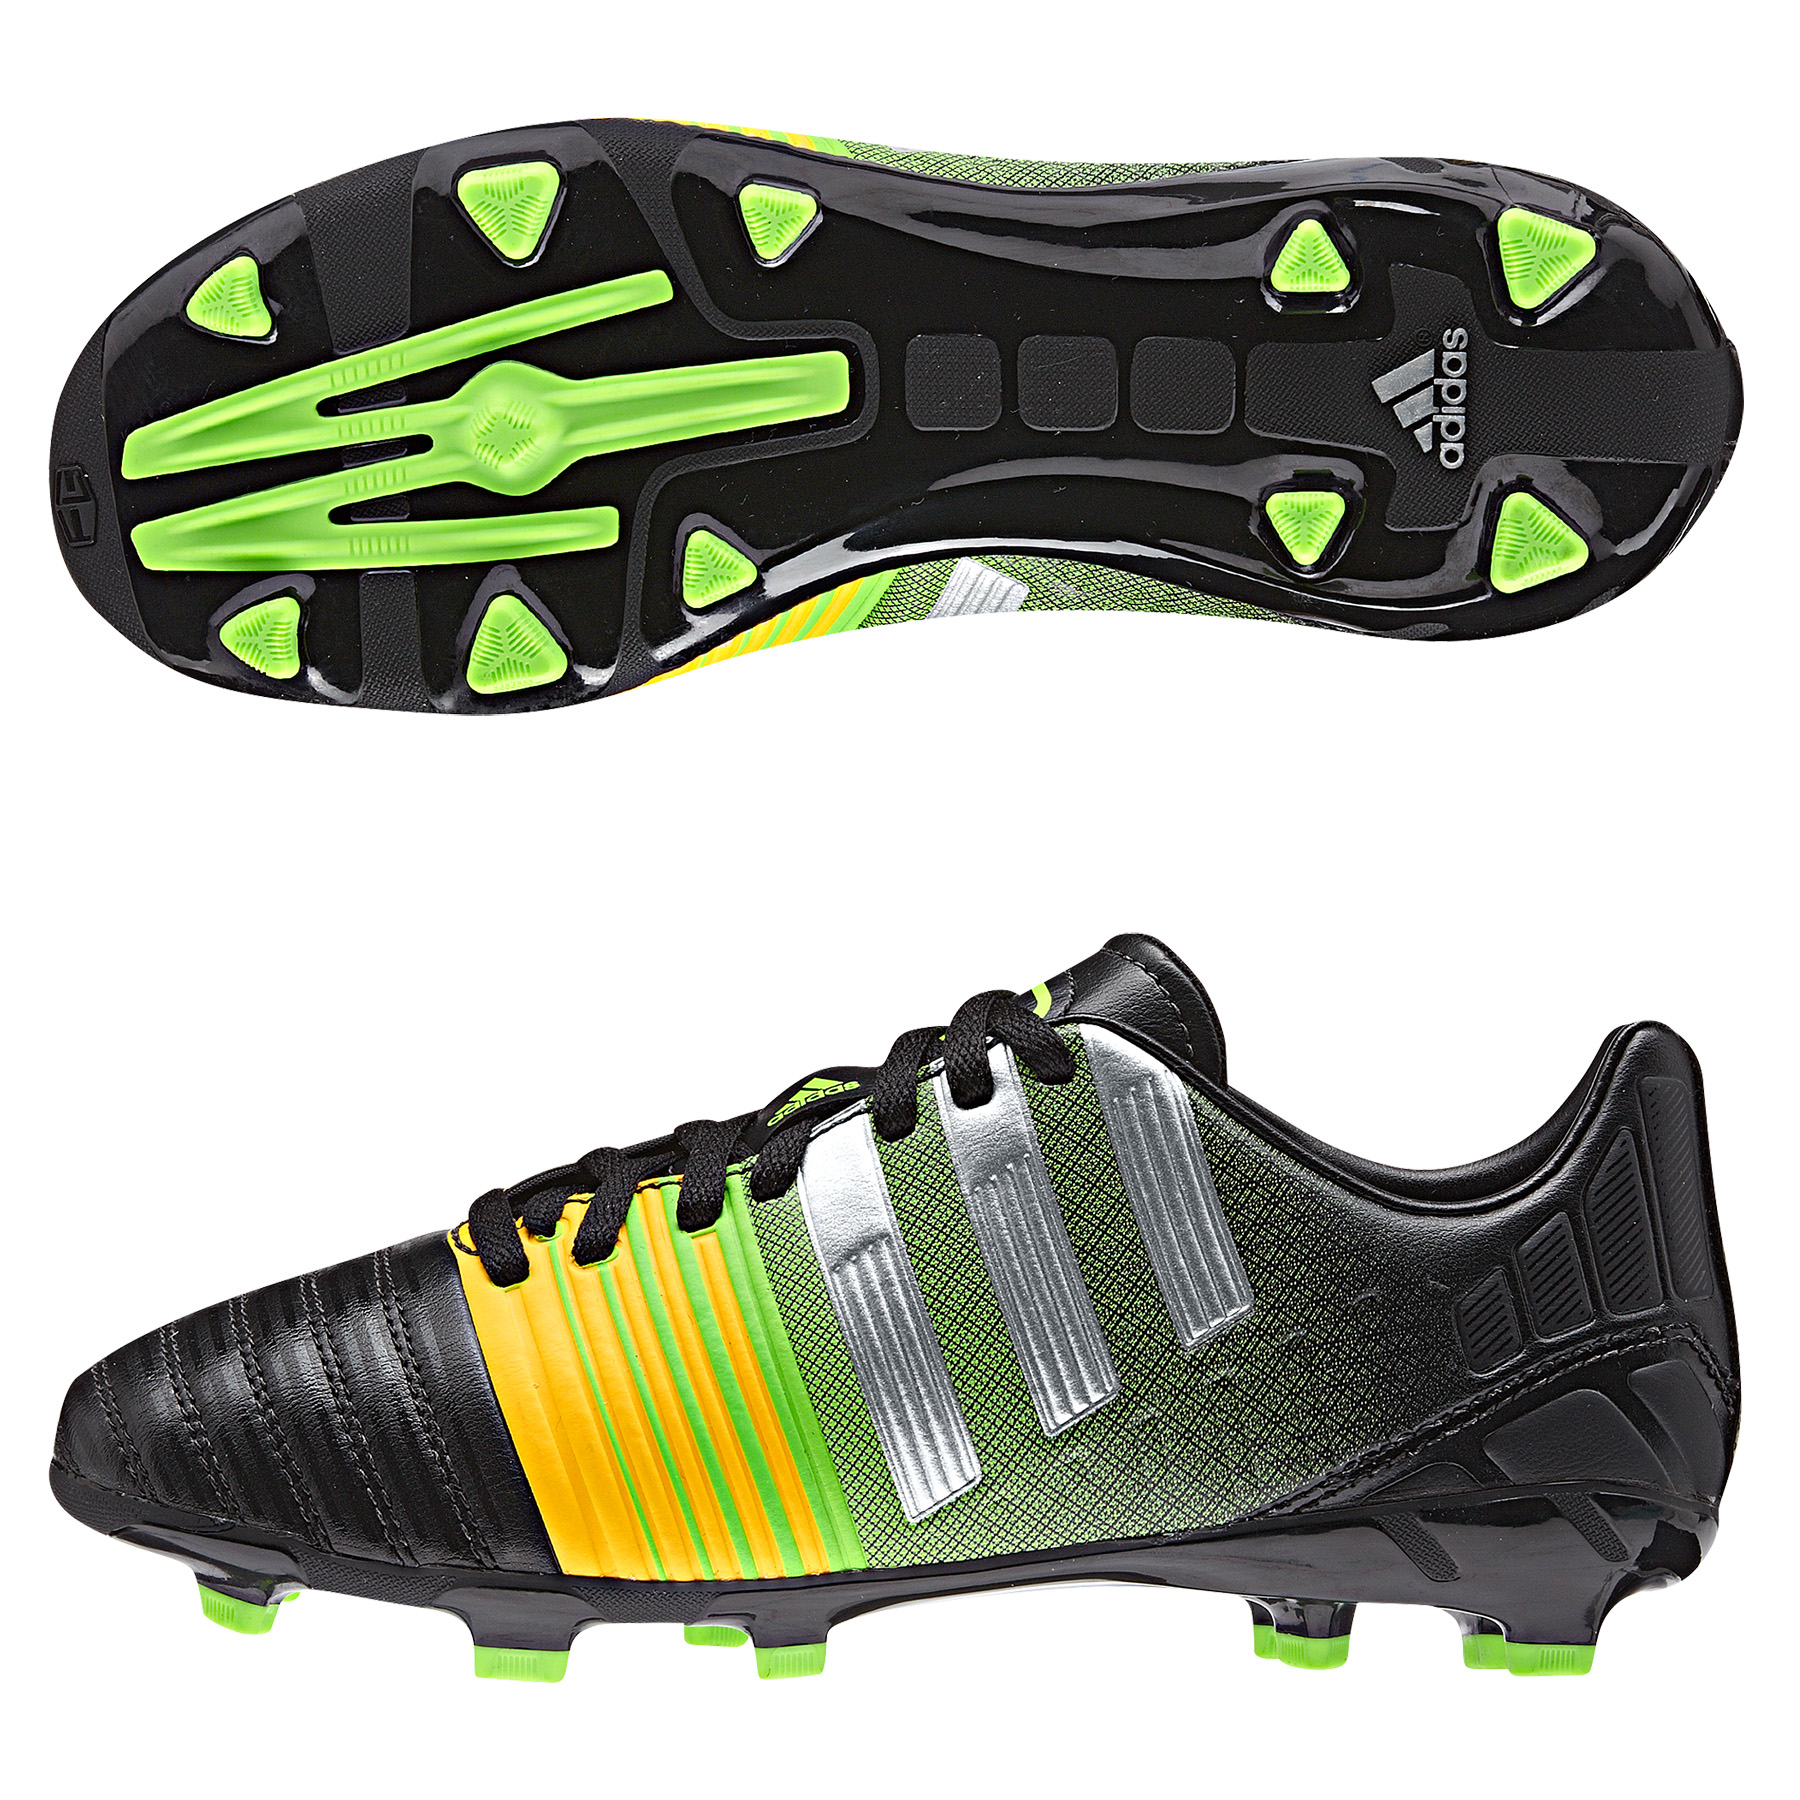 Adidas Nitrocharge 3.0 Firm Ground Football Boots  Kids Black